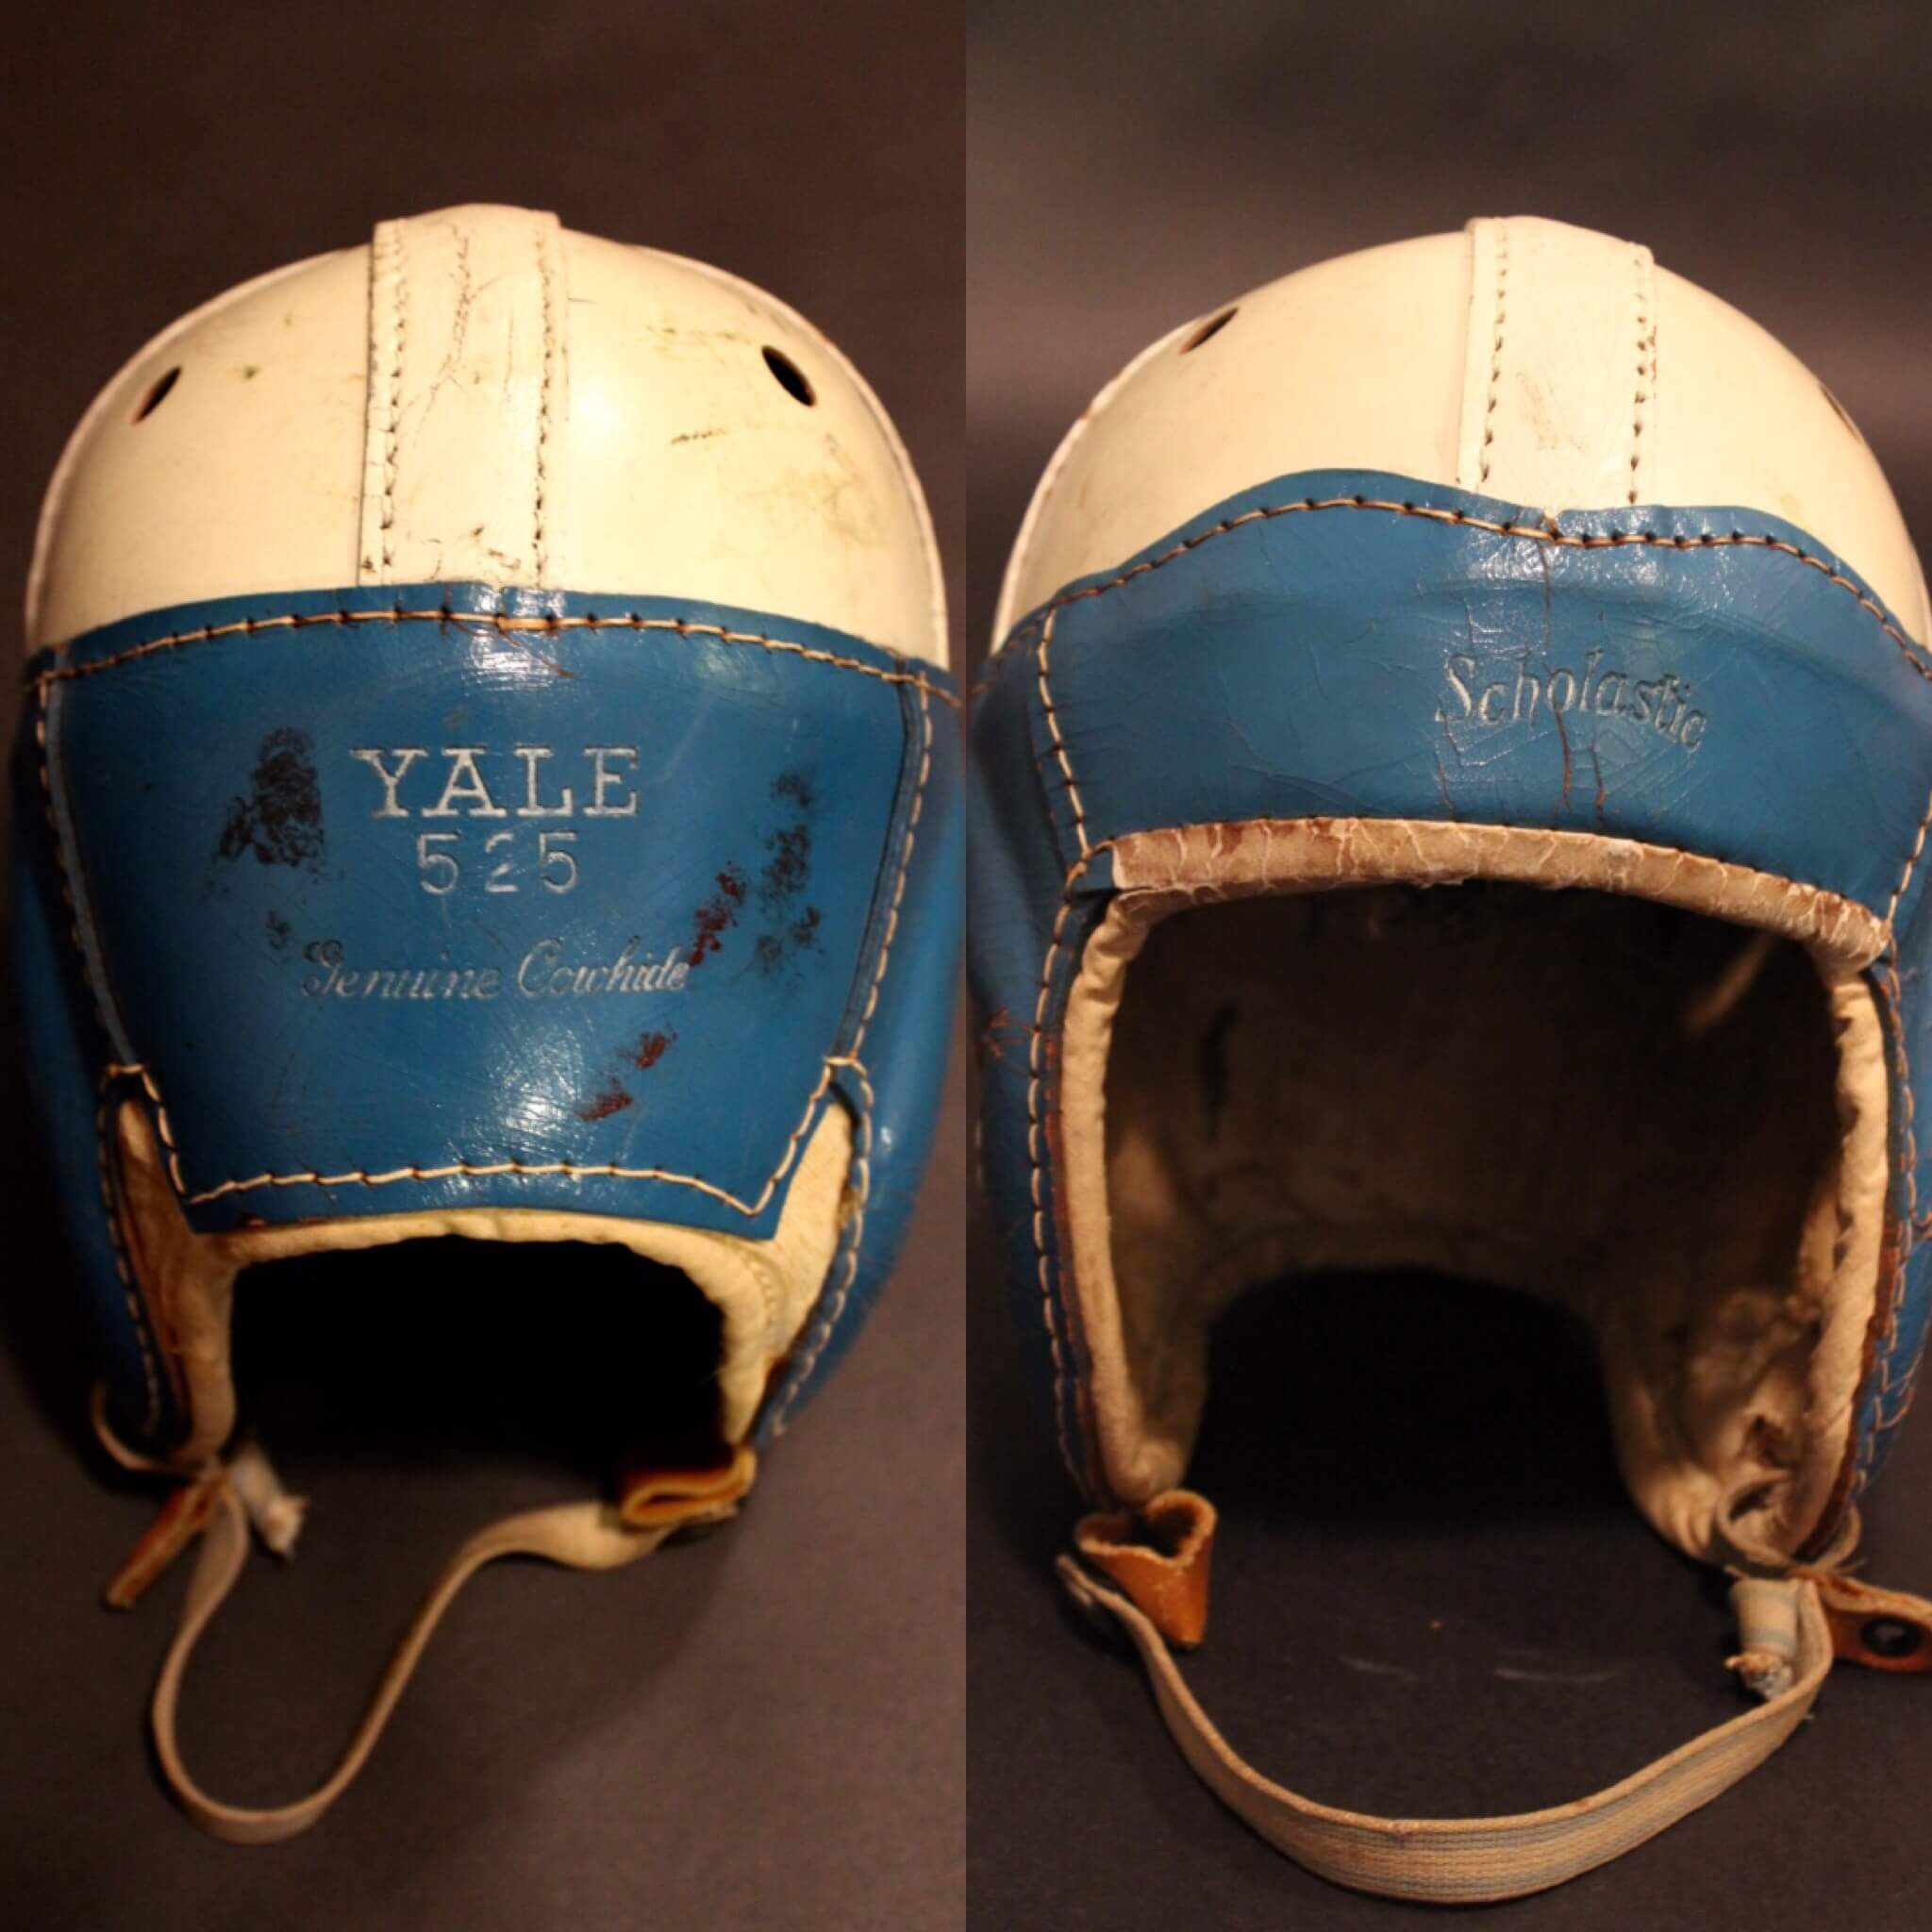 837c09511b2 A Yale University Game-Used Leather Football Helmet. Circa 1930 s.  Scholastic Manufactured.